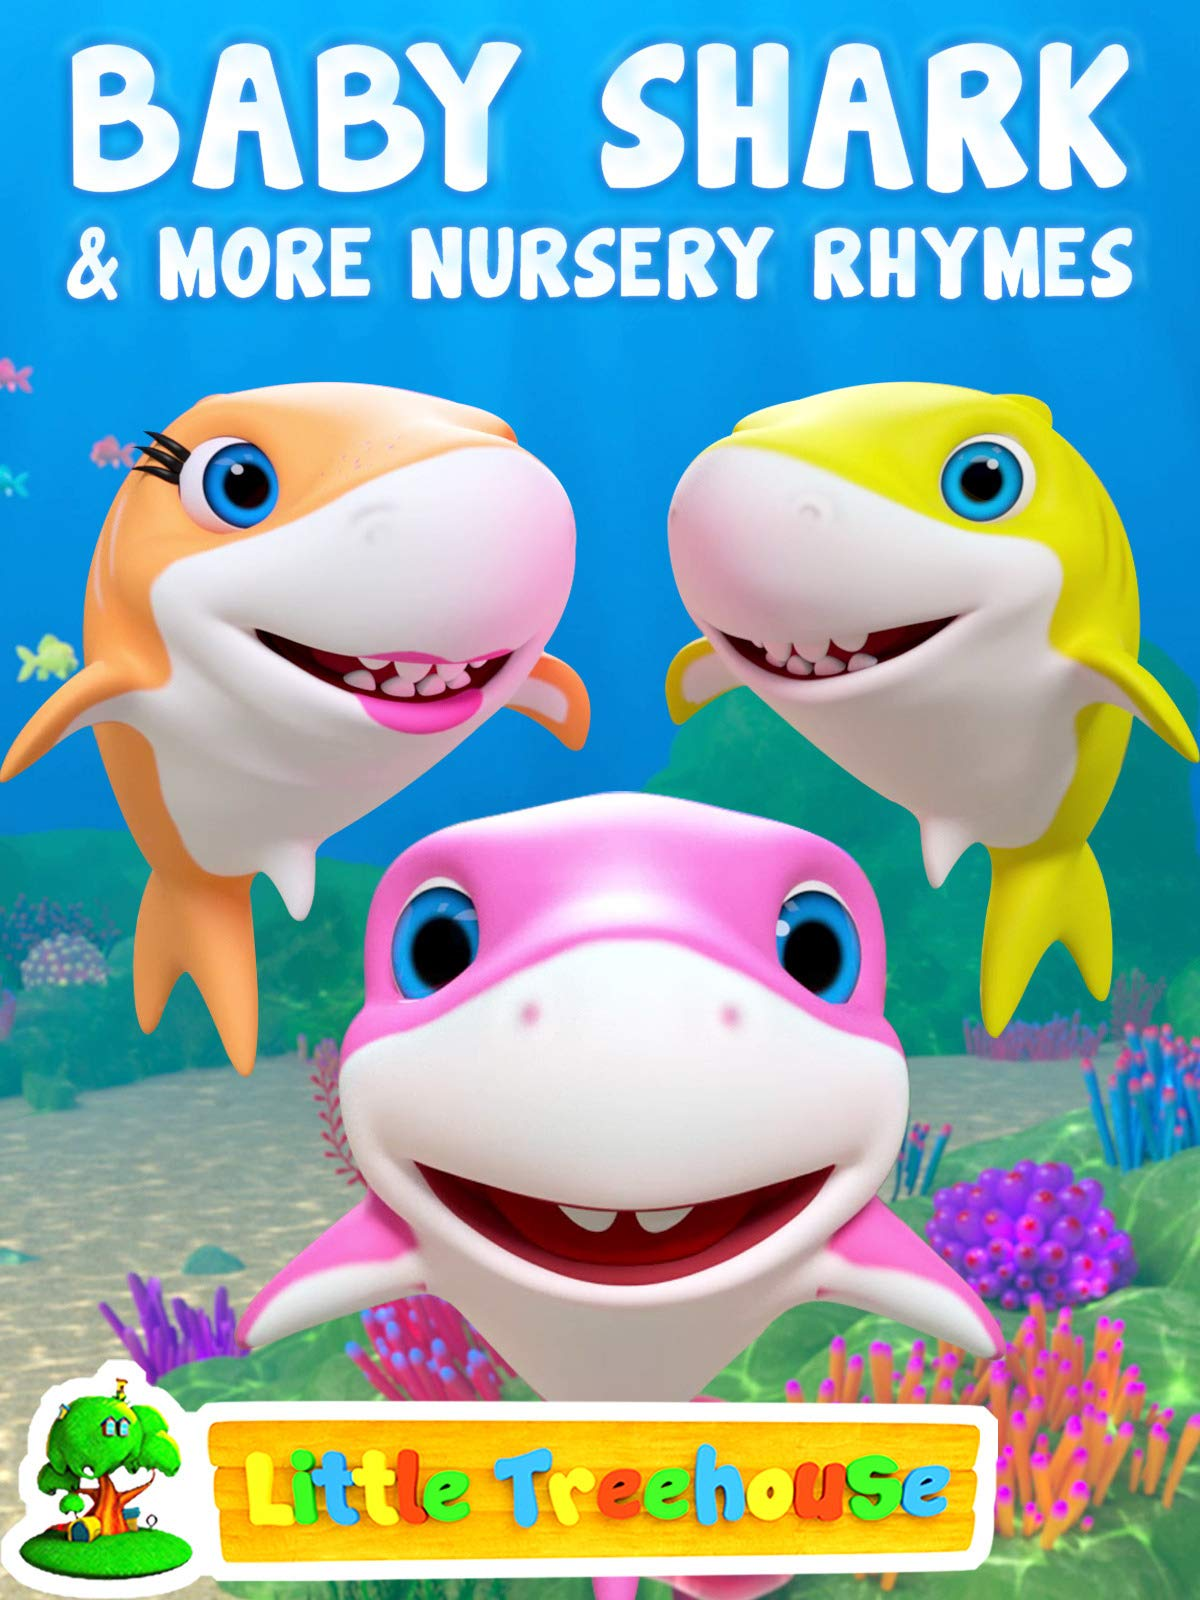 Baby Shark & More Nursery Rhymes - Little Treehouse on Amazon Prime Video UK